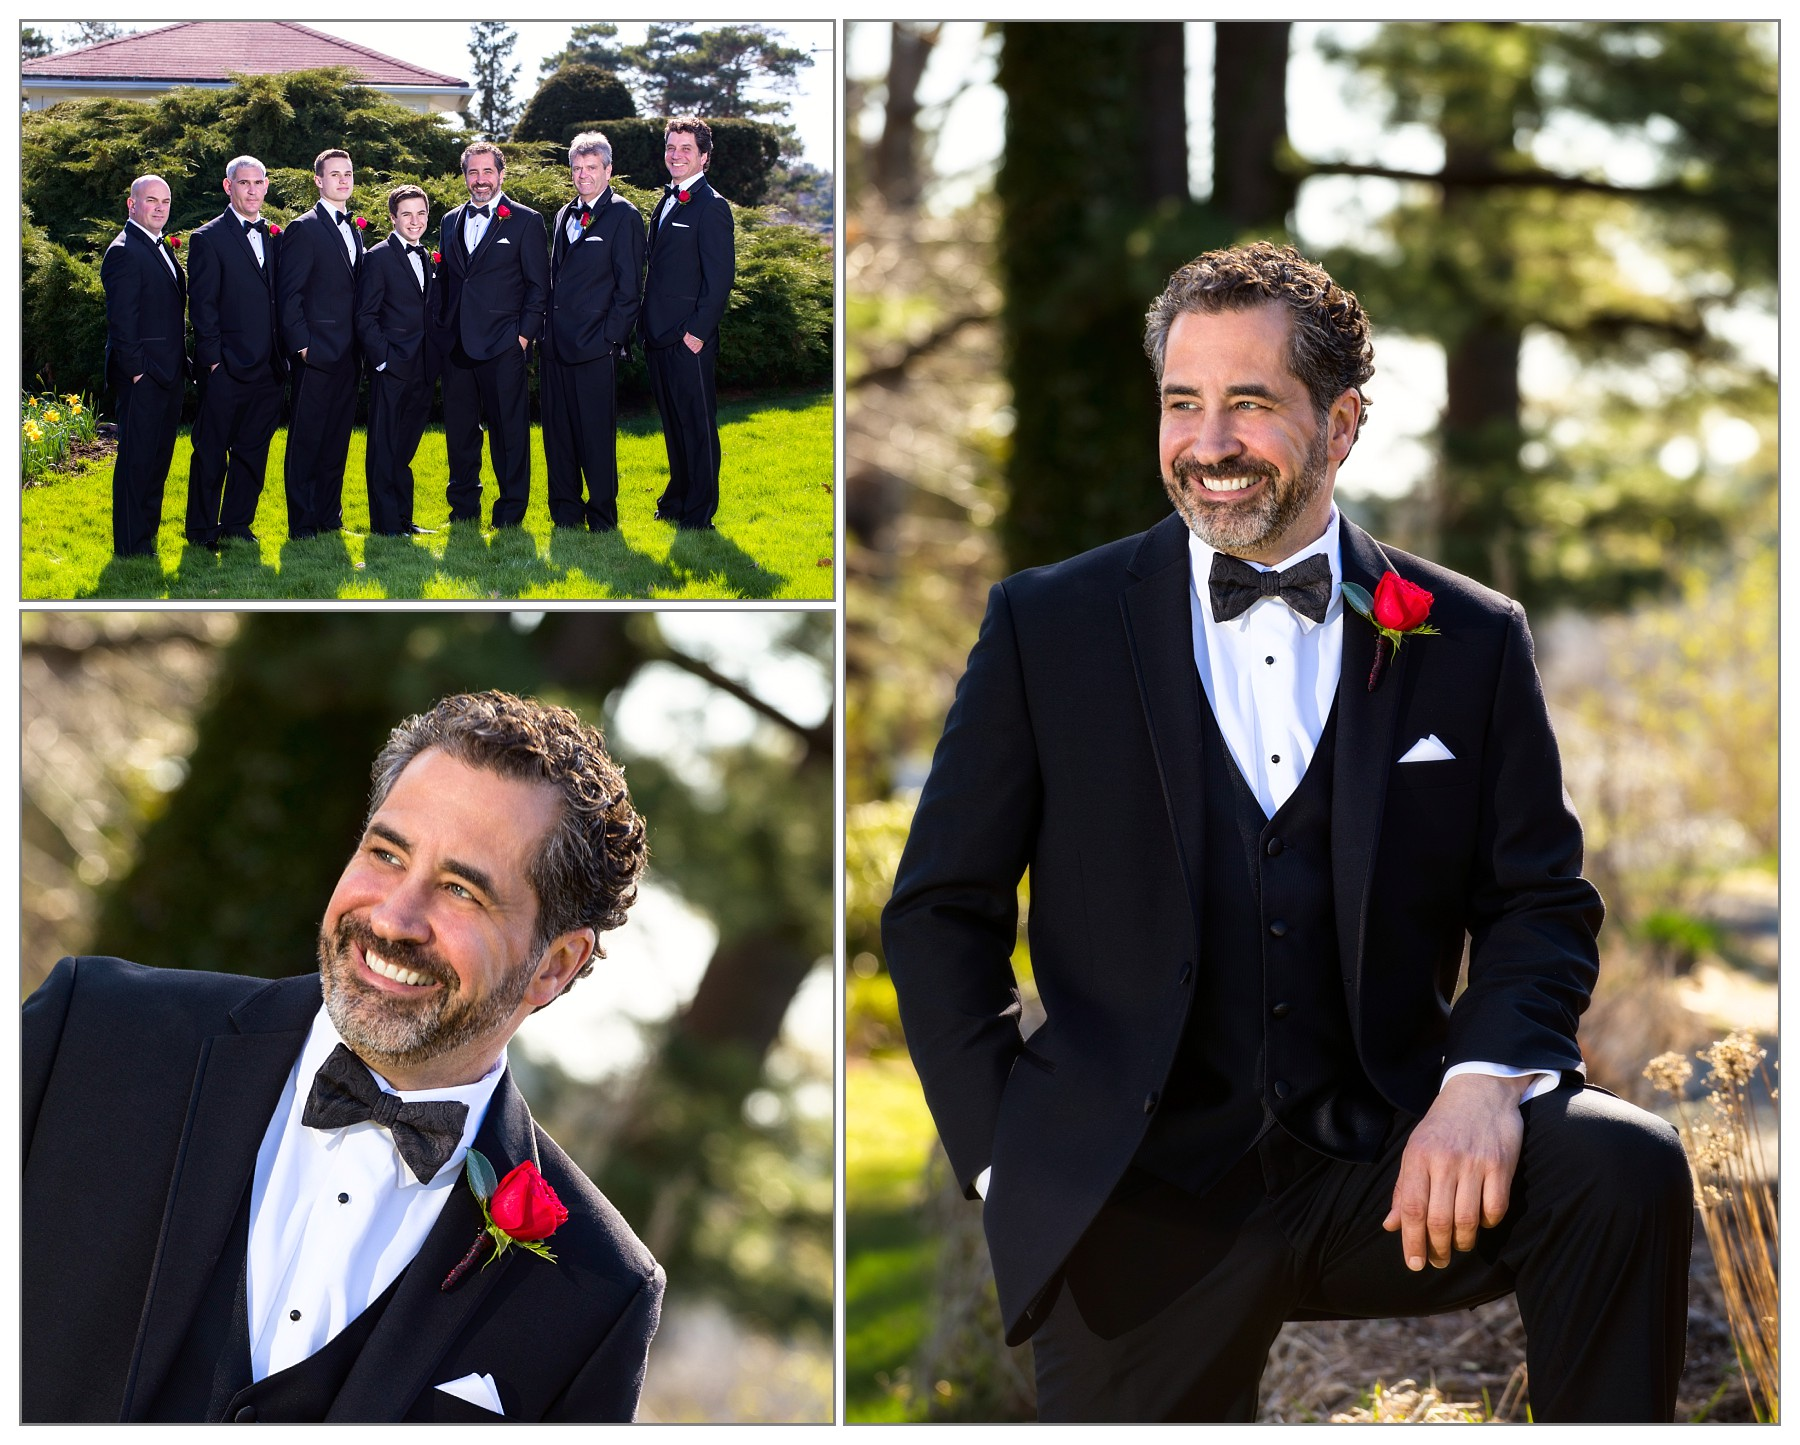 groom and men at Wentworth by the Sea hotel wedding